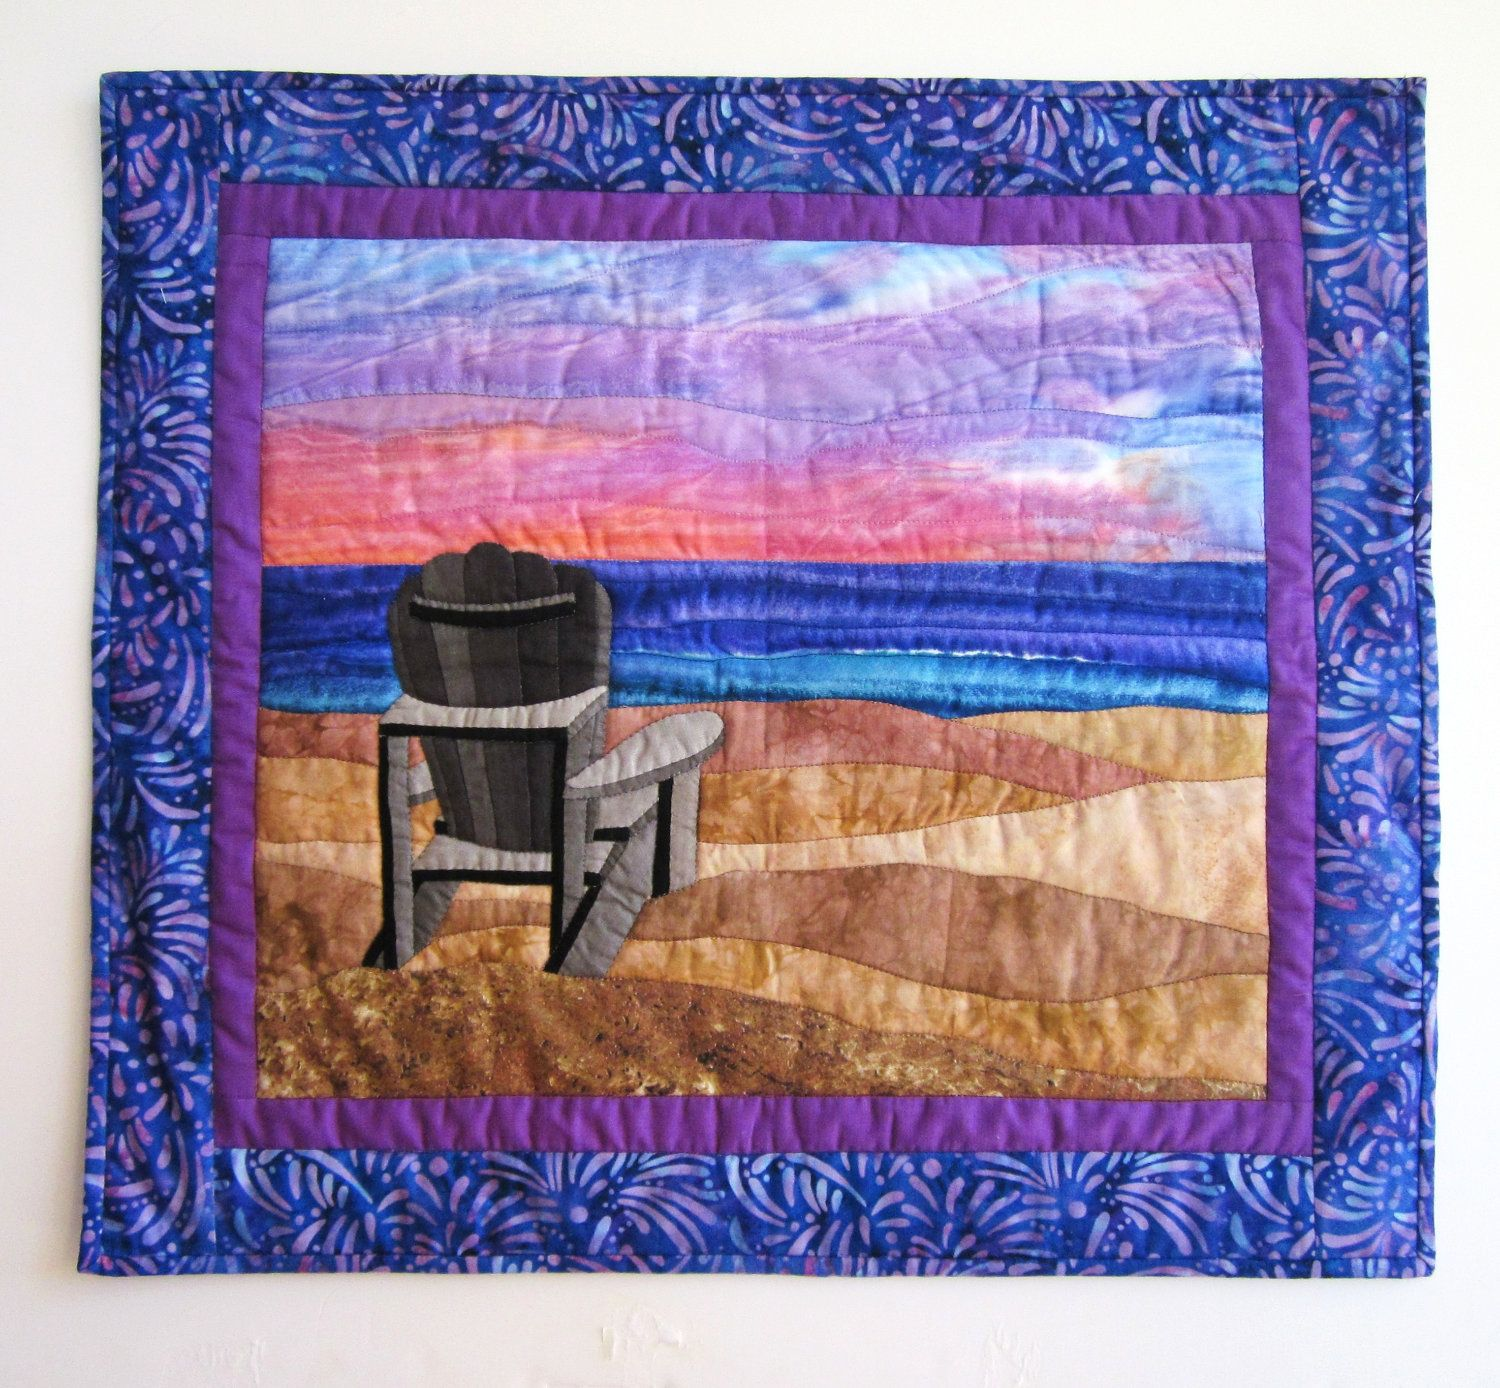 Wall Hanging Quilts quilted wall hanging sunset beach scene -- alzheimer's awareness